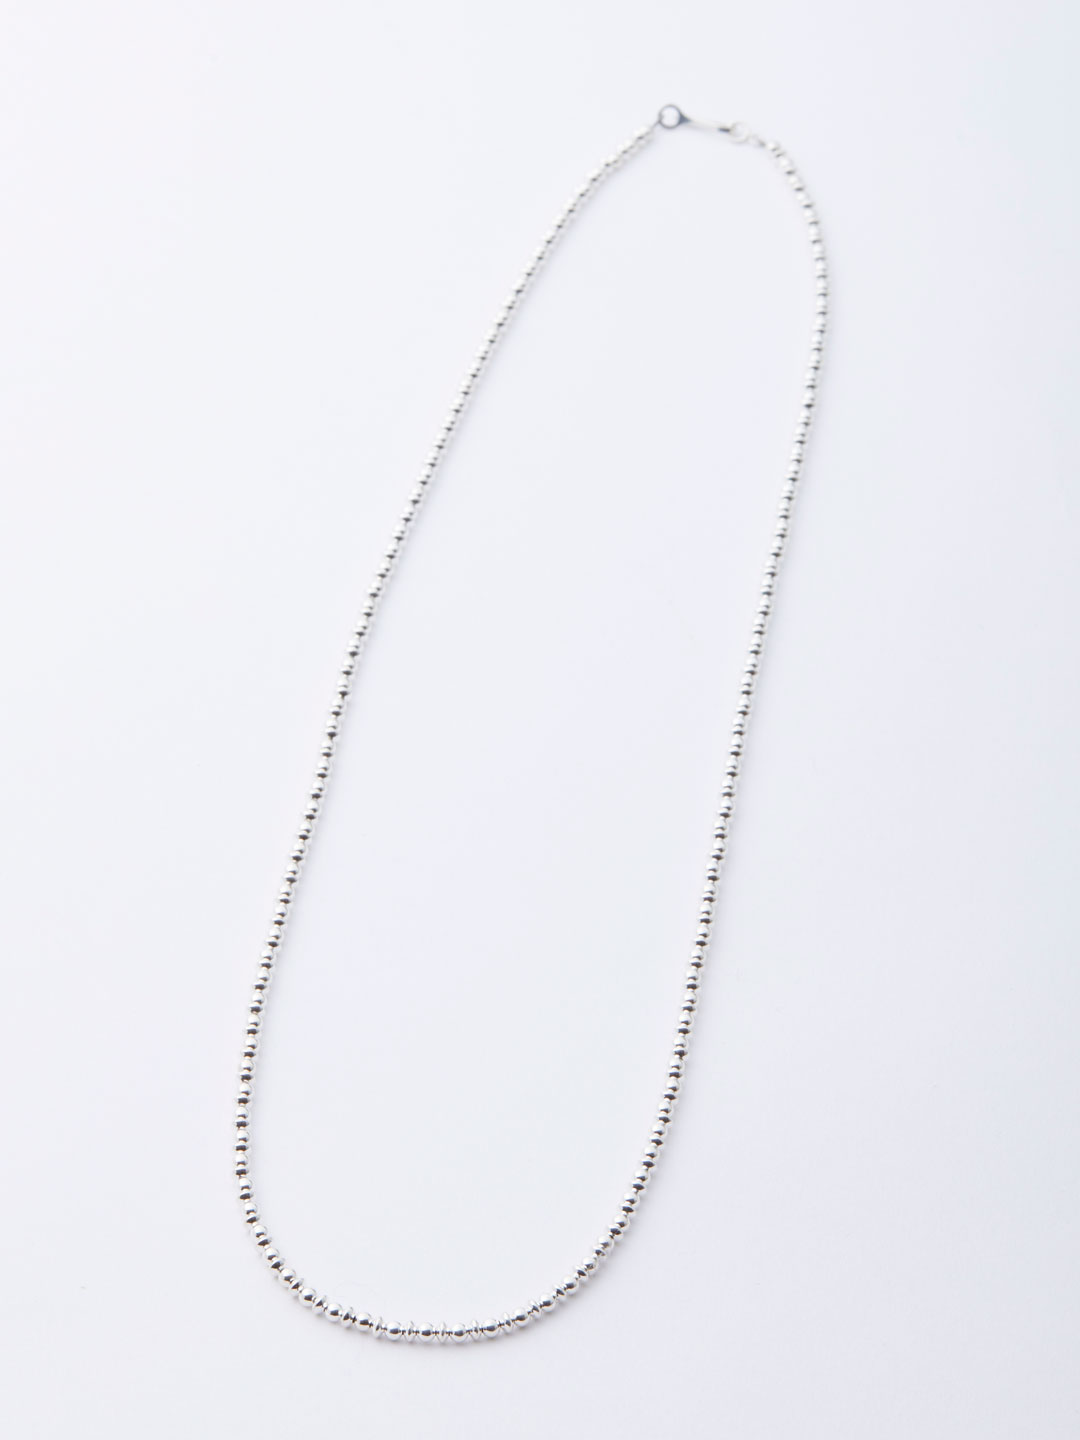 3mm Ball Chain Necklace 63.5cm - Silver